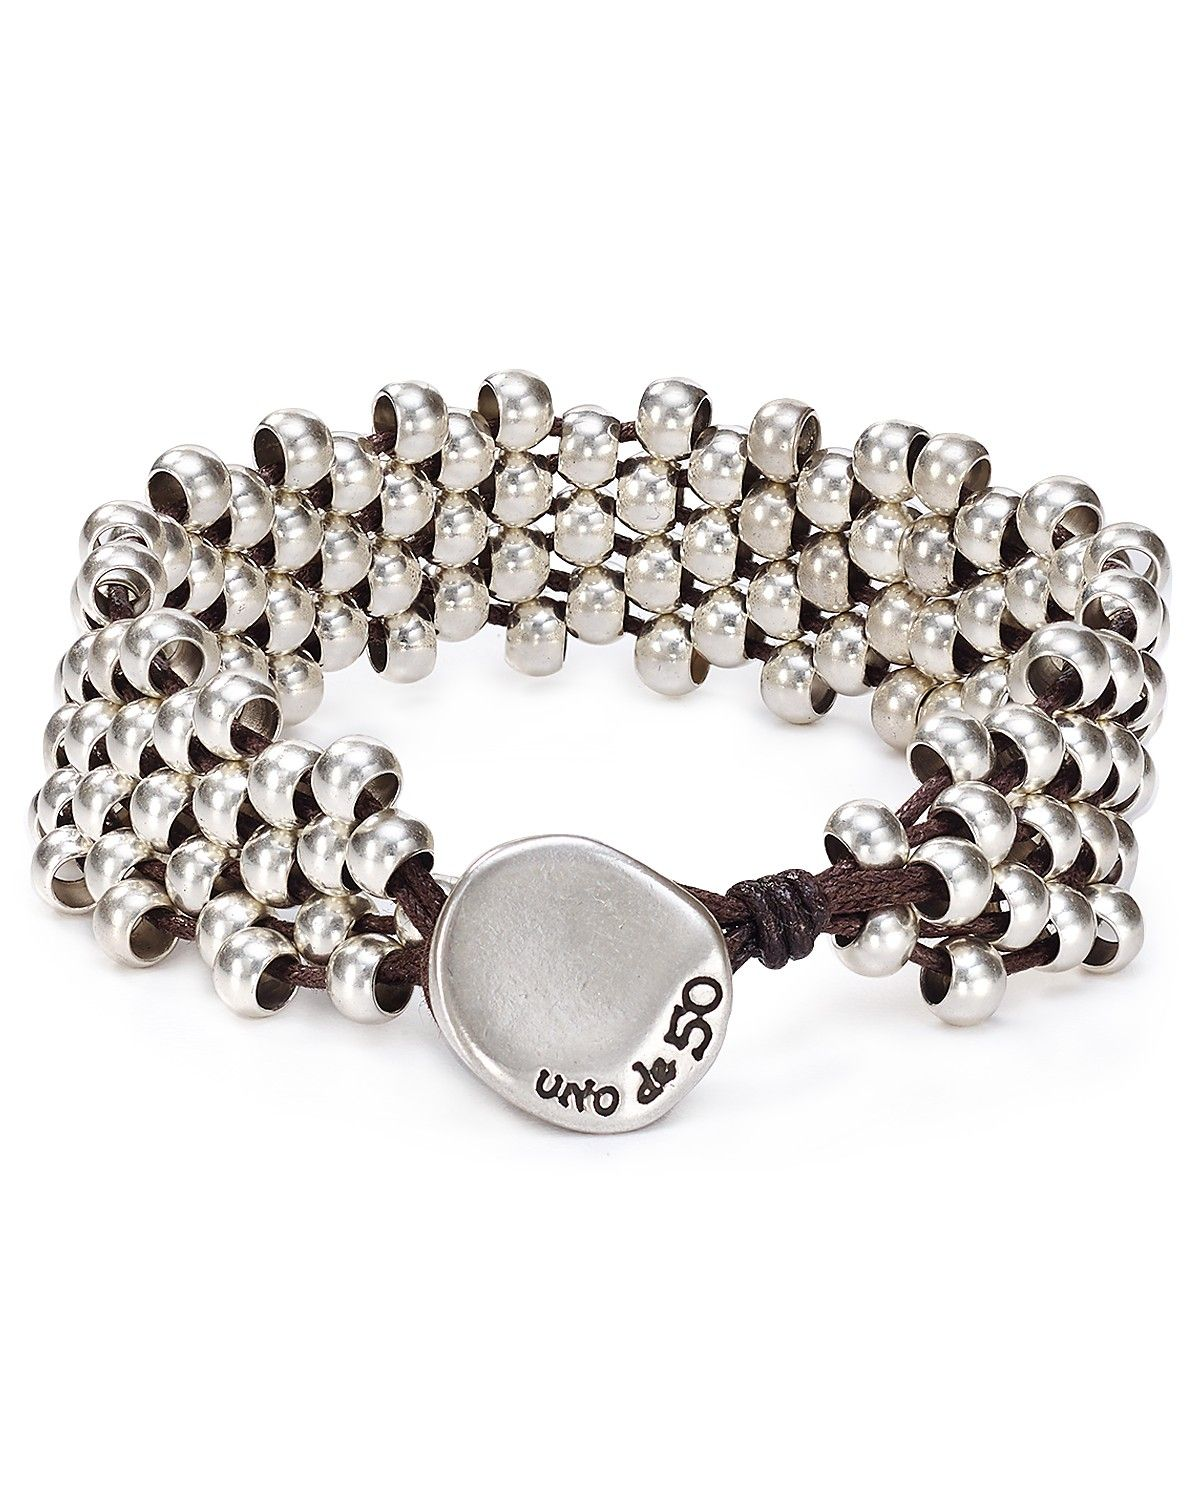 2019 year look- Hand Spectacular accessory metal chain bracelets